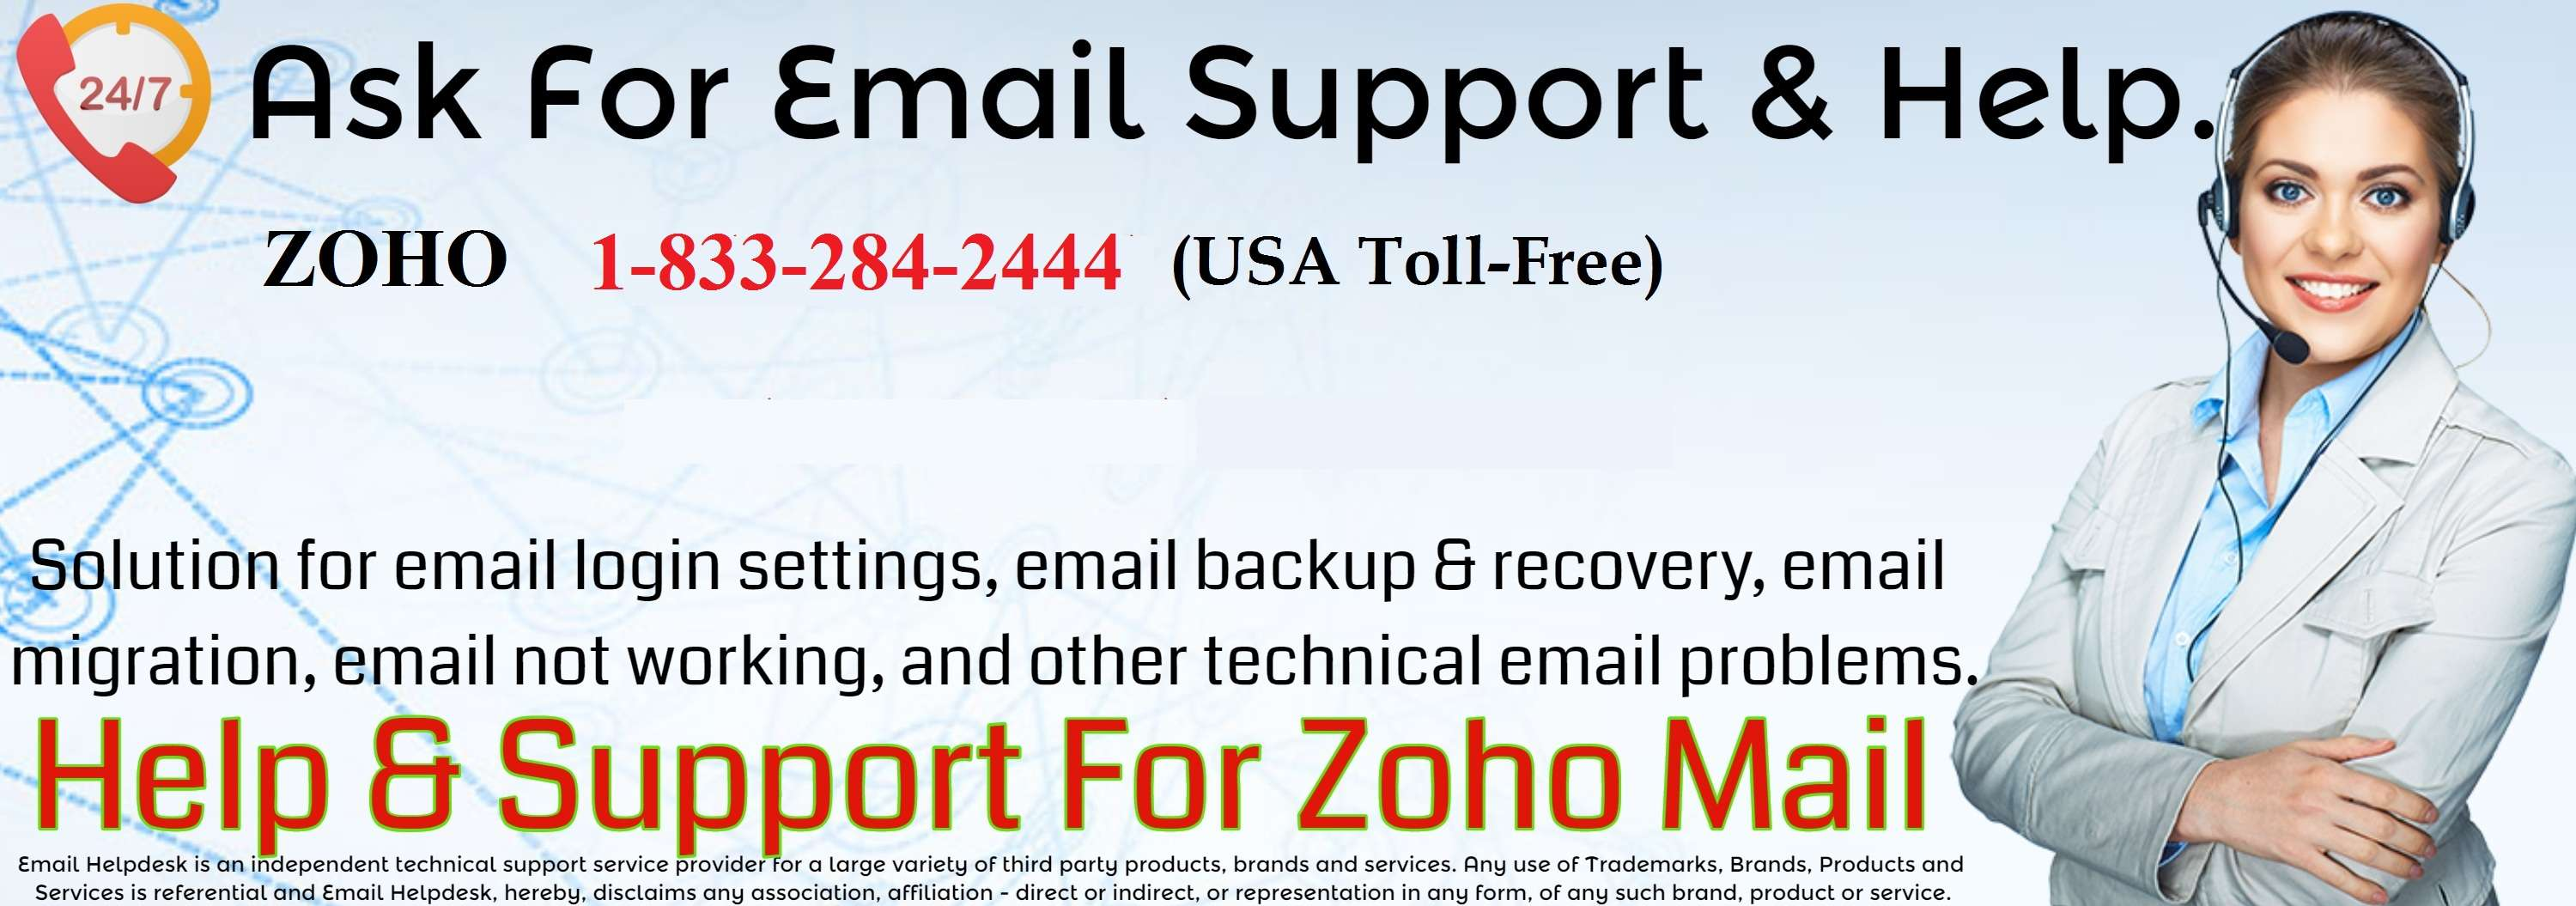 Zoho Mail Support +1-833-284-2444 Service | Phone Number